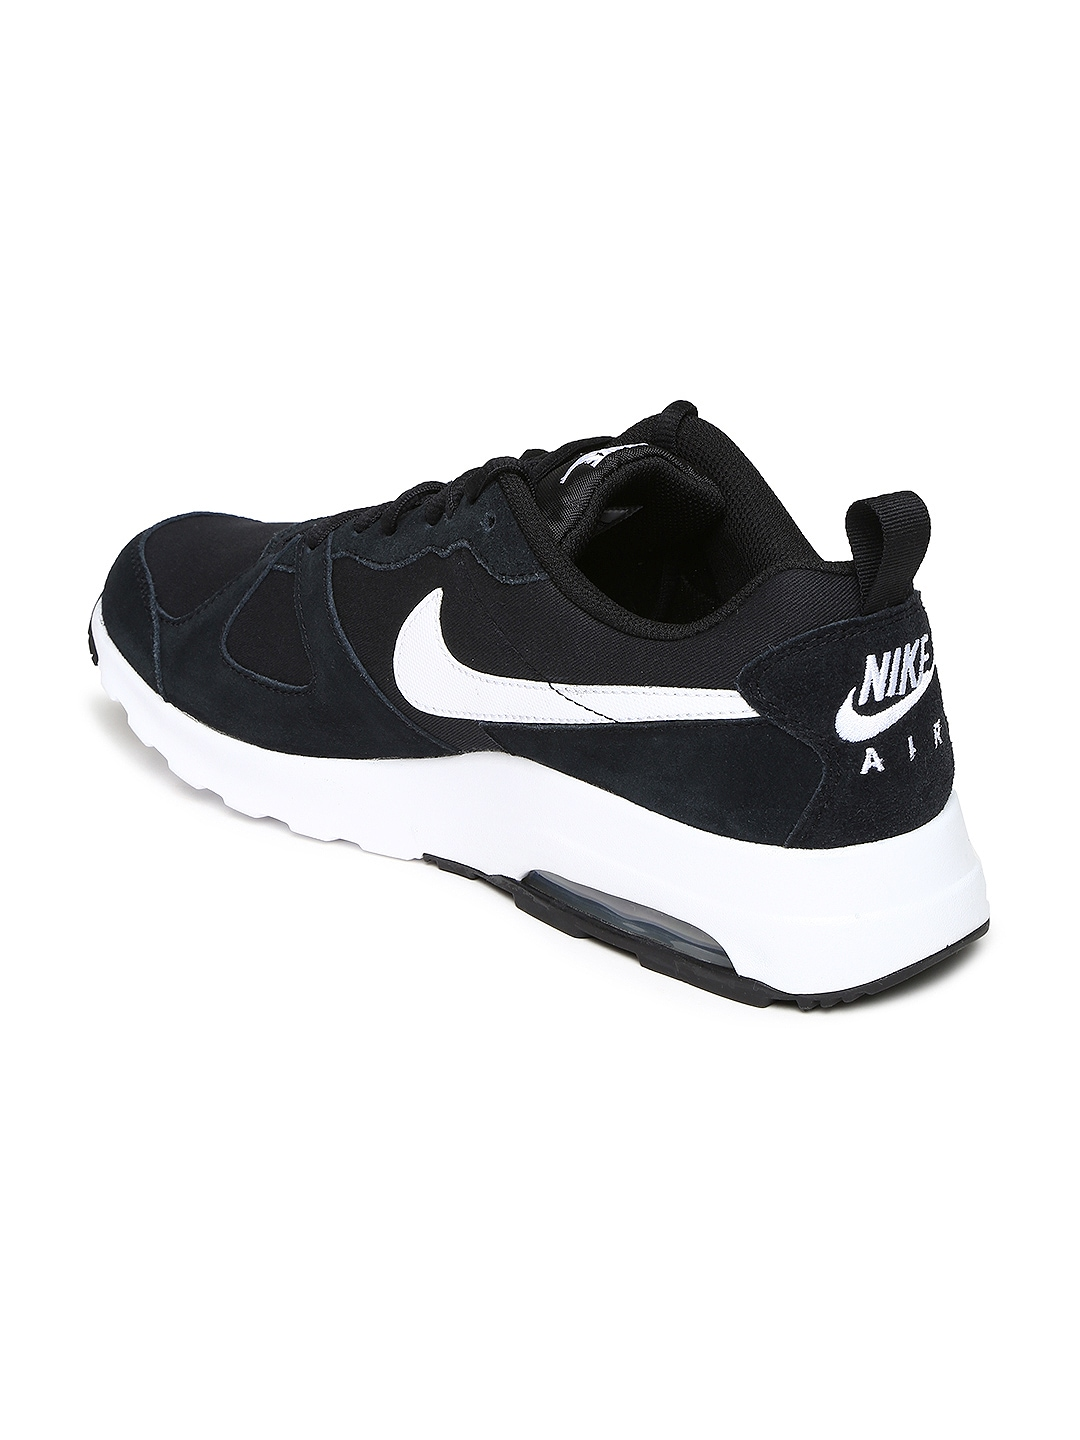 fb85fdc7a466 uk nike air max muse leather 28c26 6ad23  ebay air max muse black sneakers  . fa054 a9aa7